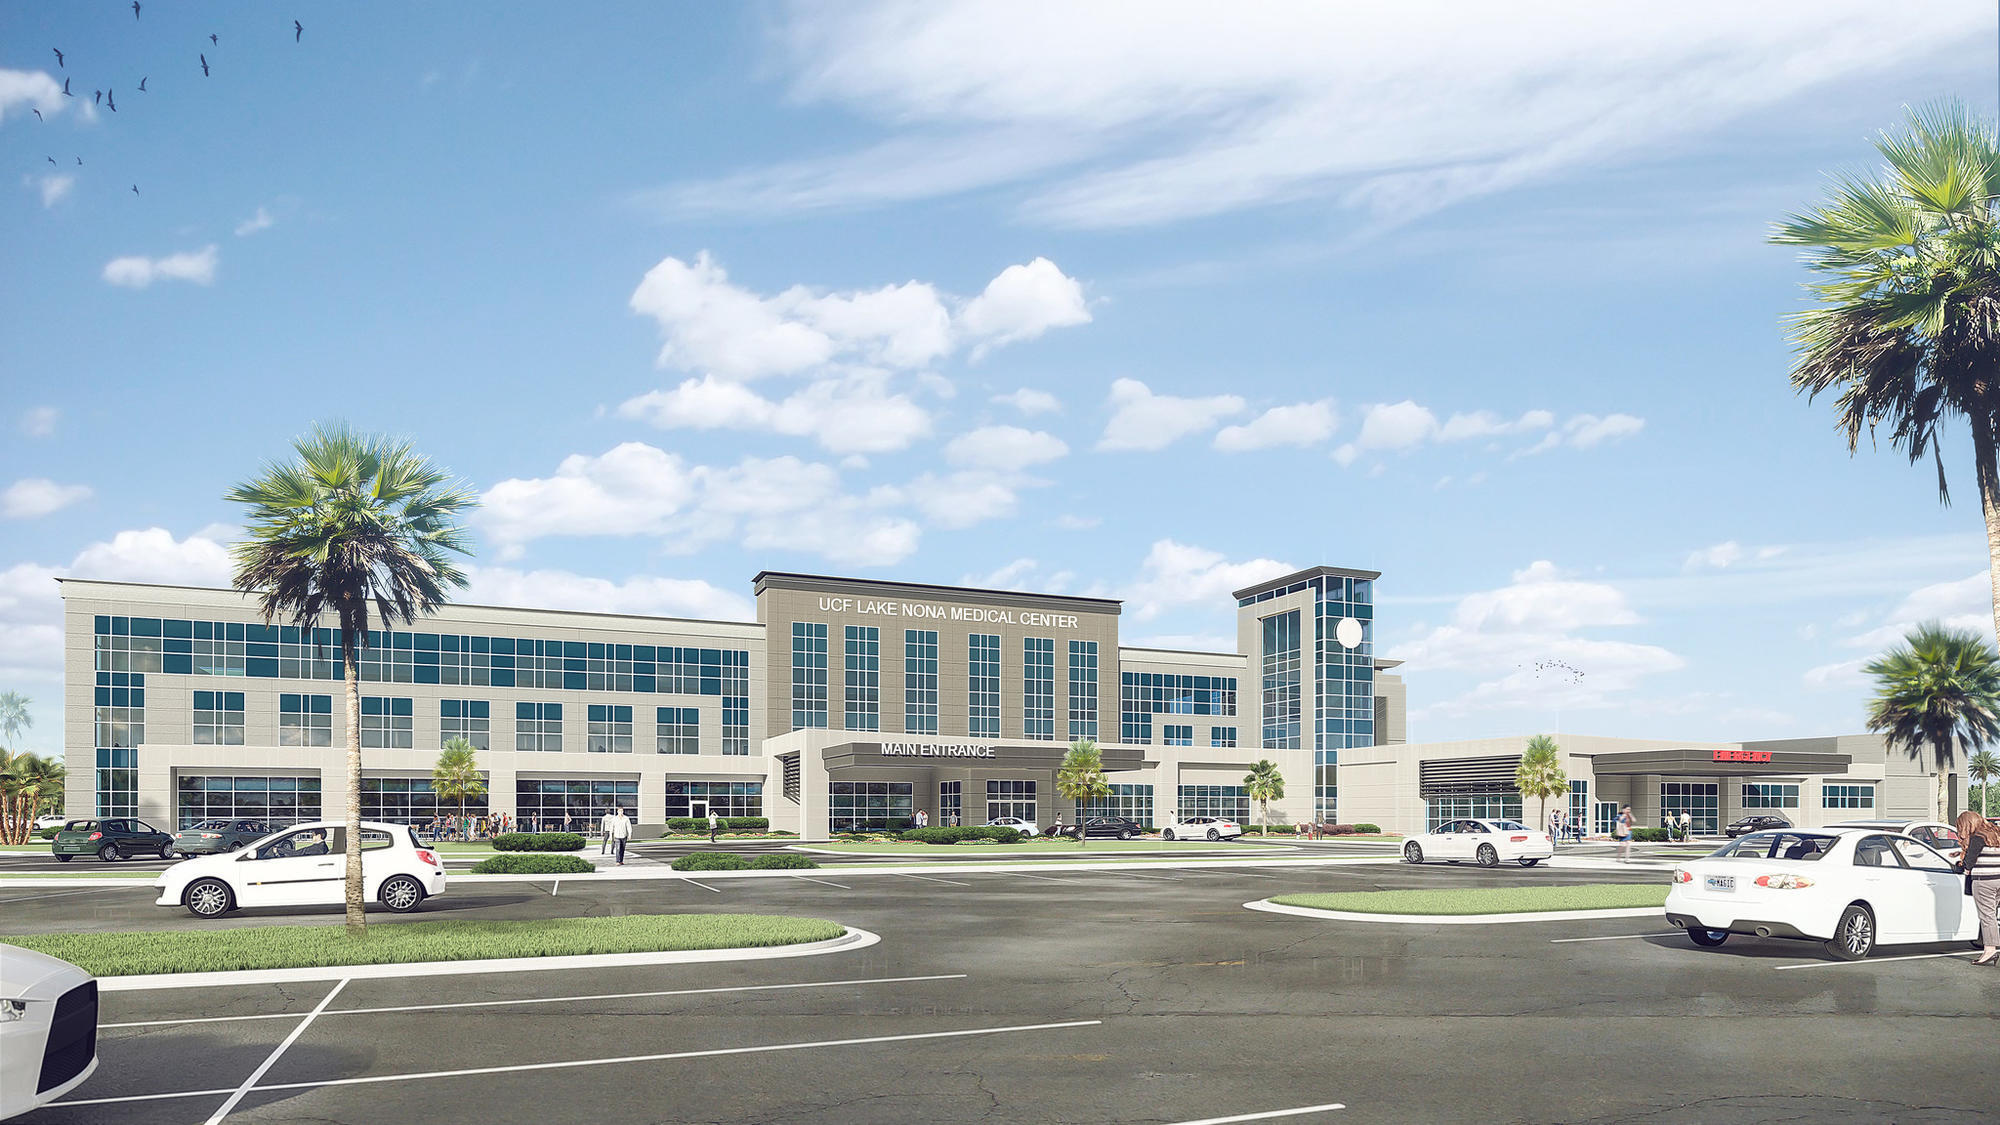 Ucf Reveals More Details About Future Teaching Hospital